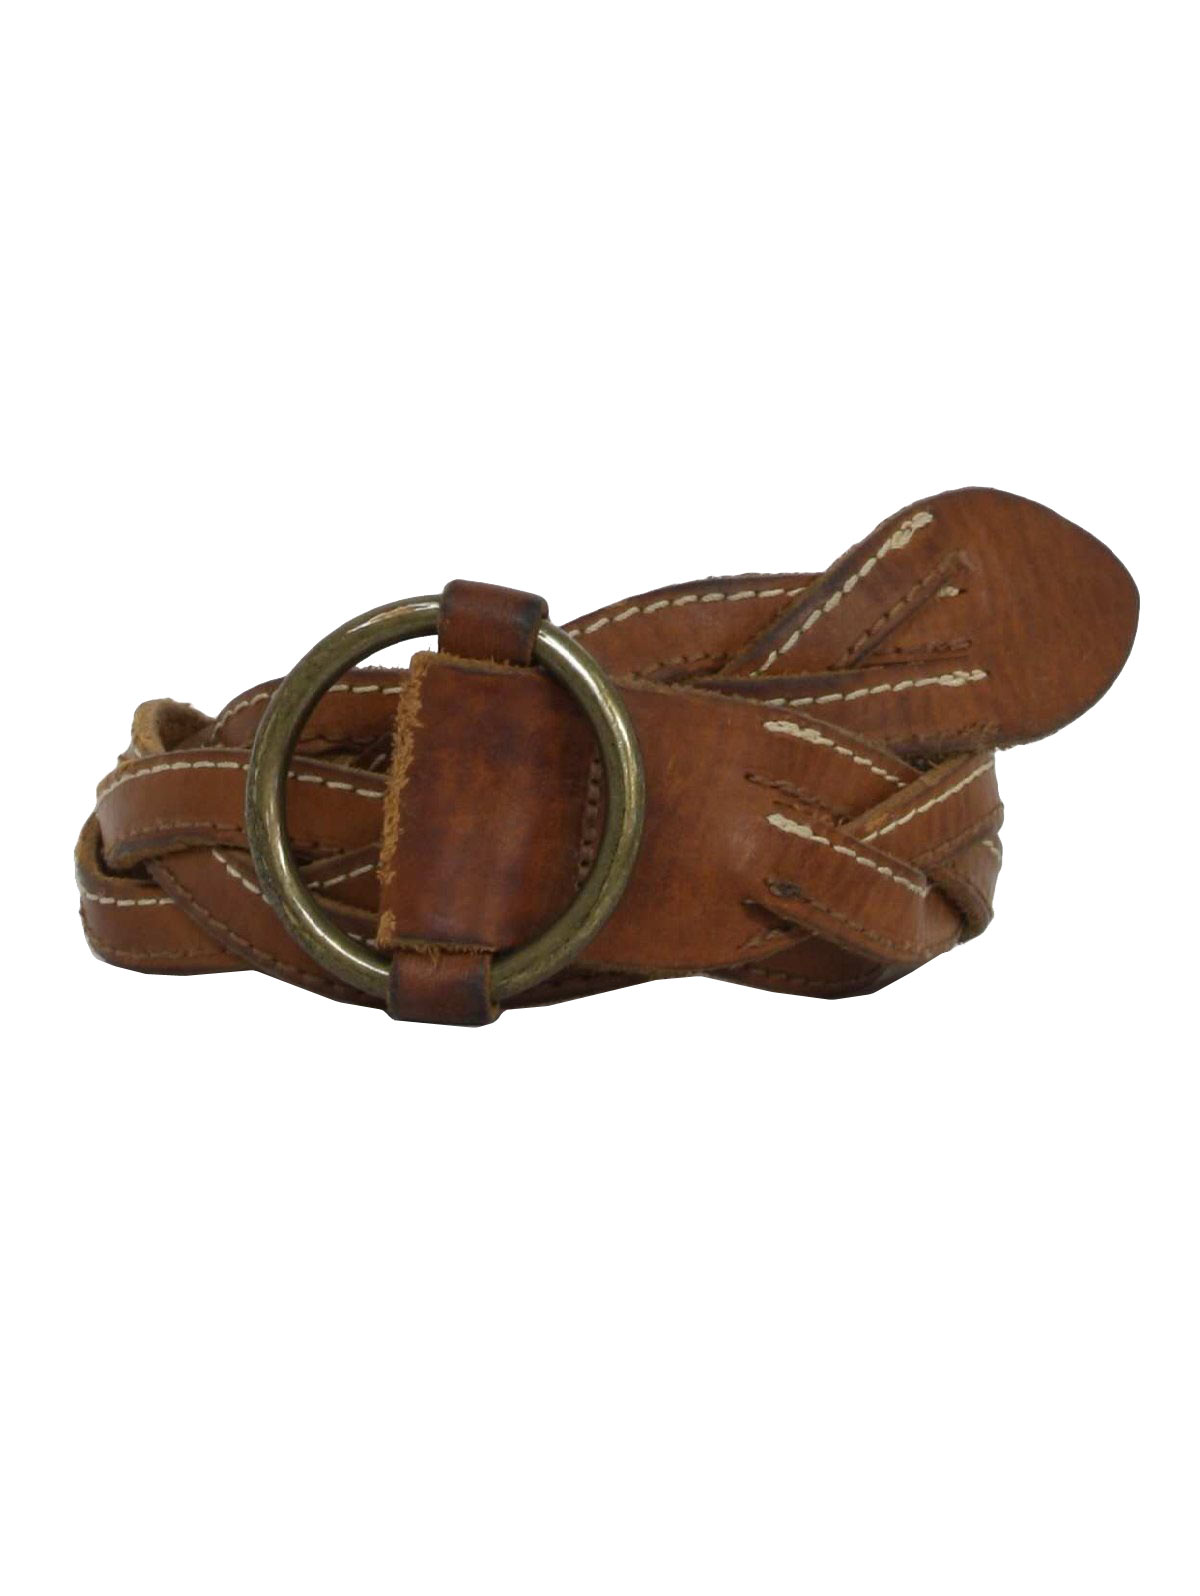 Abercrombie Accessories Abercrombie Accessories Abercrombie Womens Abercrombie Couple Abercrombie Womens: 90's Abercrombie And Fitch Belt: 90s -Abercrombie And